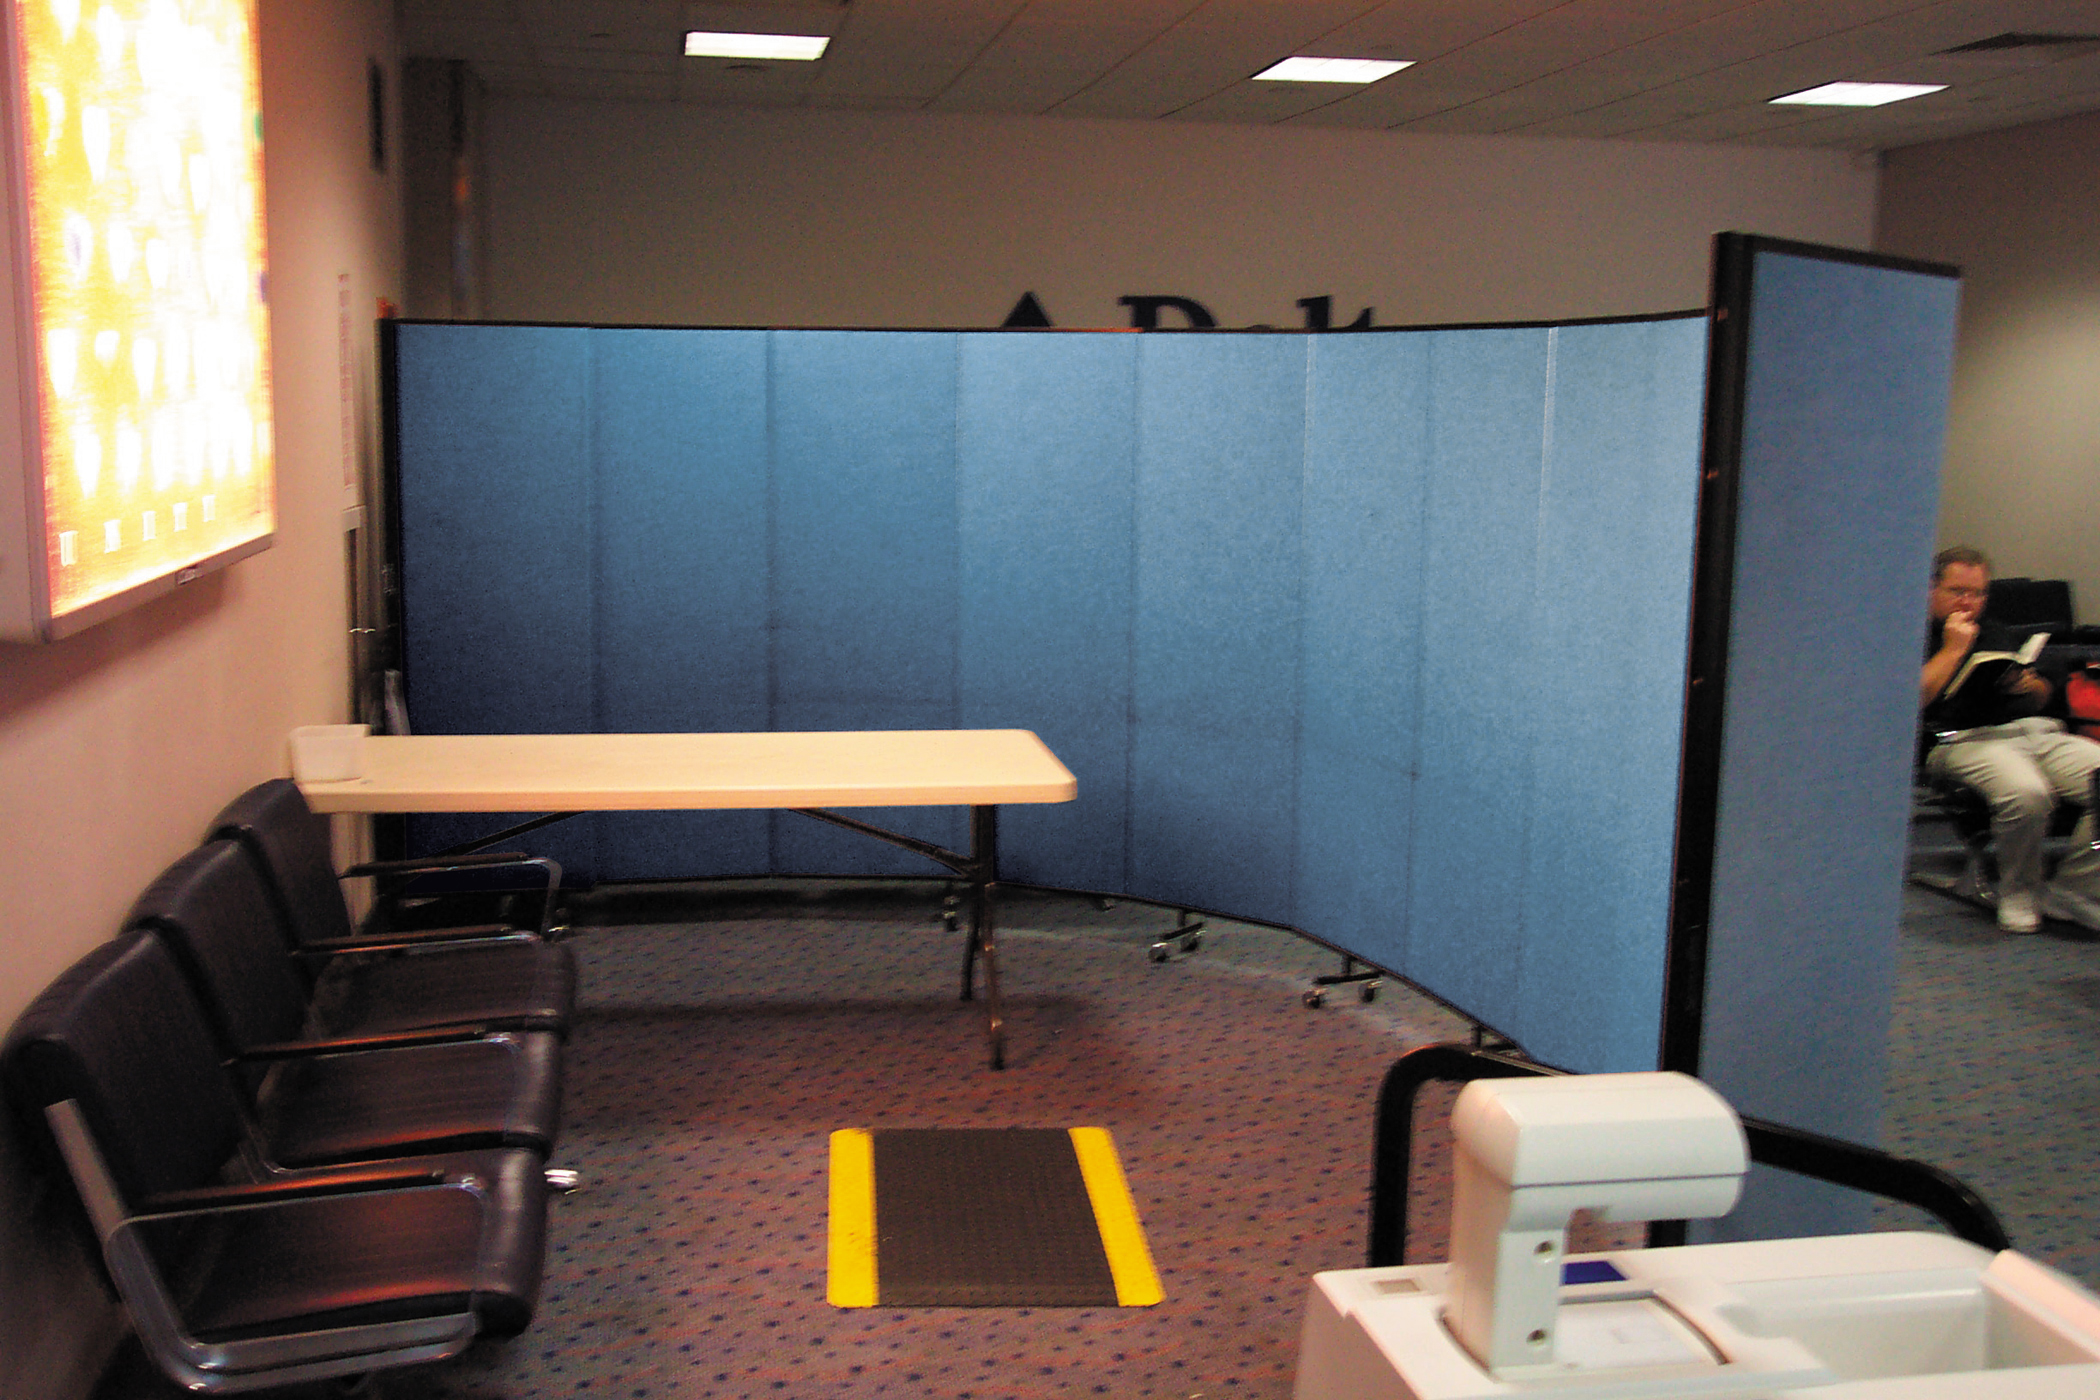 A blue room divider on wheels separates a medical waiting area and a screening room